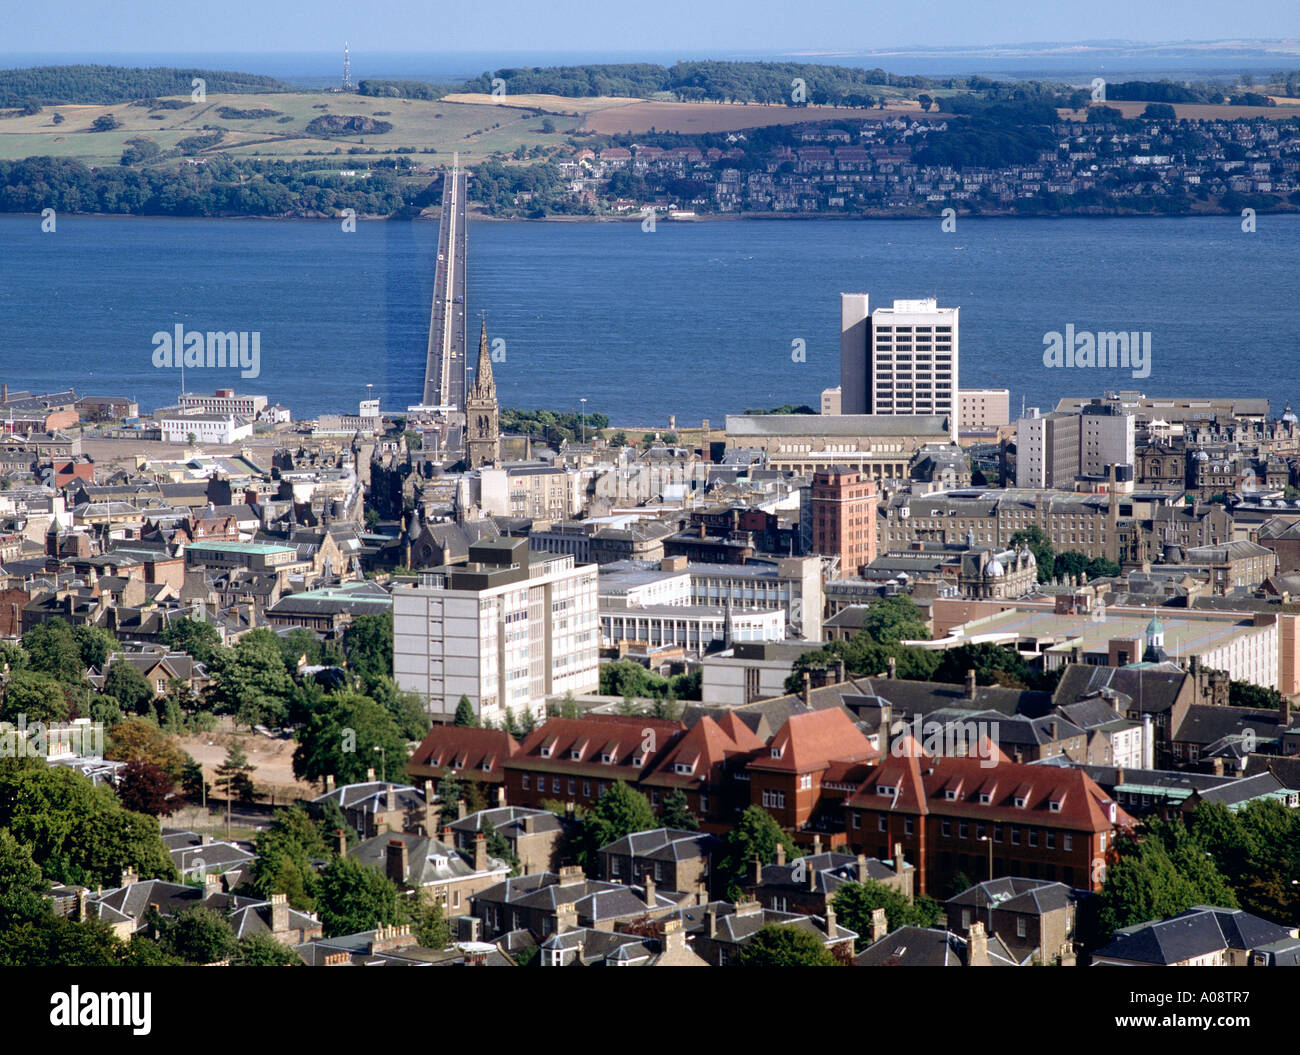 dh Tay bridge DUNDEE ANGUS City Tay road bridge and River Tay scotland cityscape view skyline - Stock Image